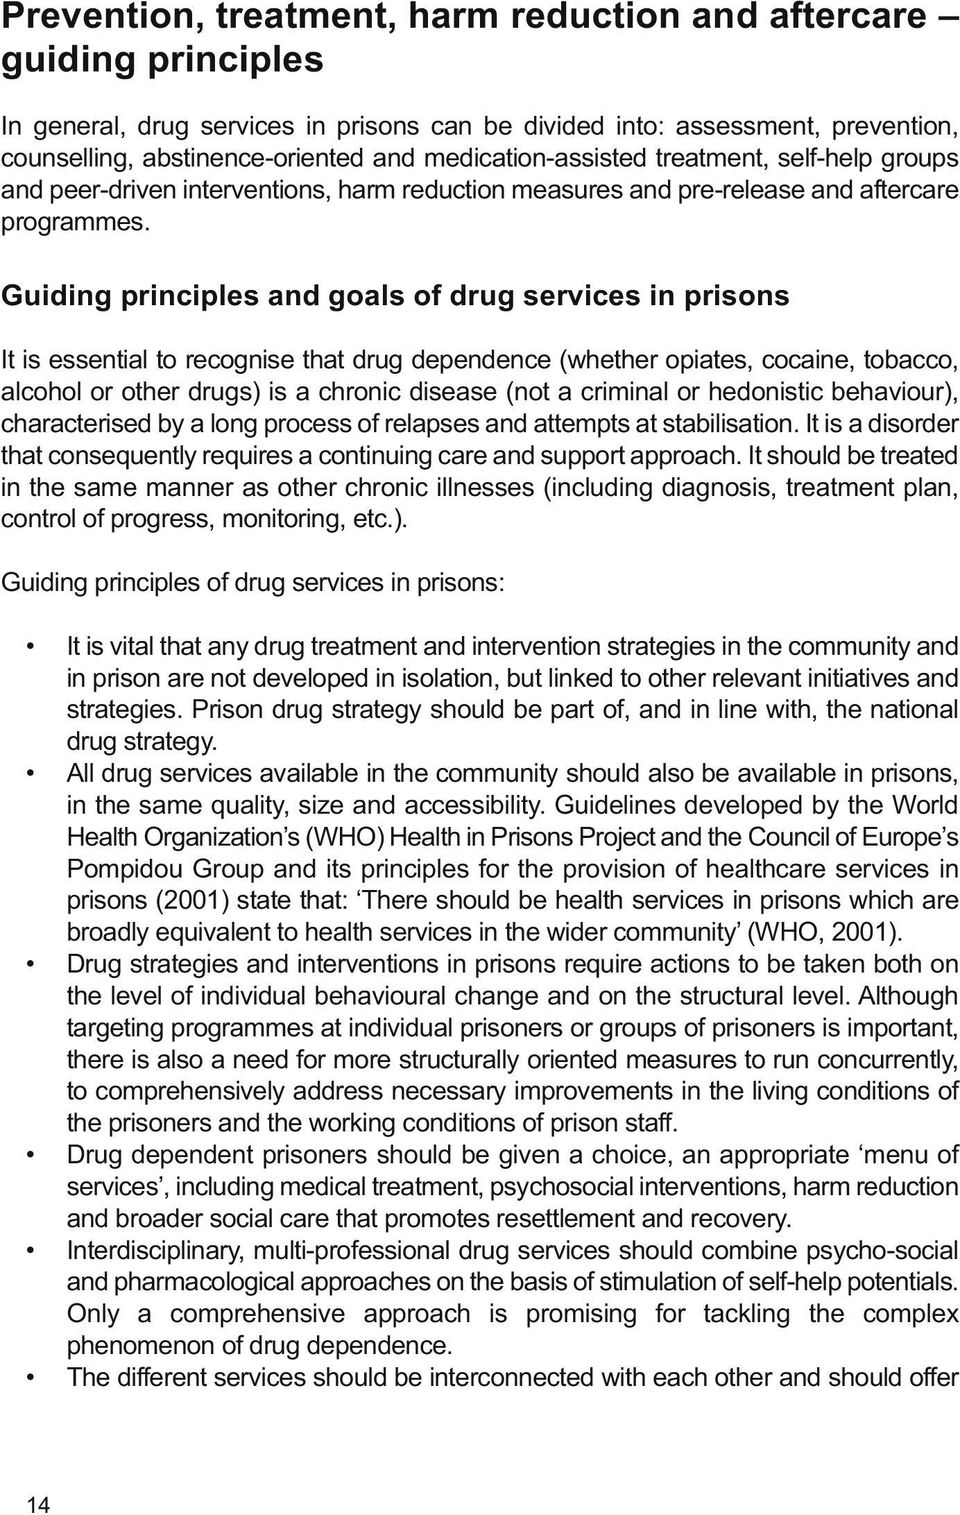 Guiding principles and goals of drug services in prisons It is essential to recognise that drug dependence (whether opiates, cocaine, tobacco, alcohol or other drugs) is a chronic disease (not a